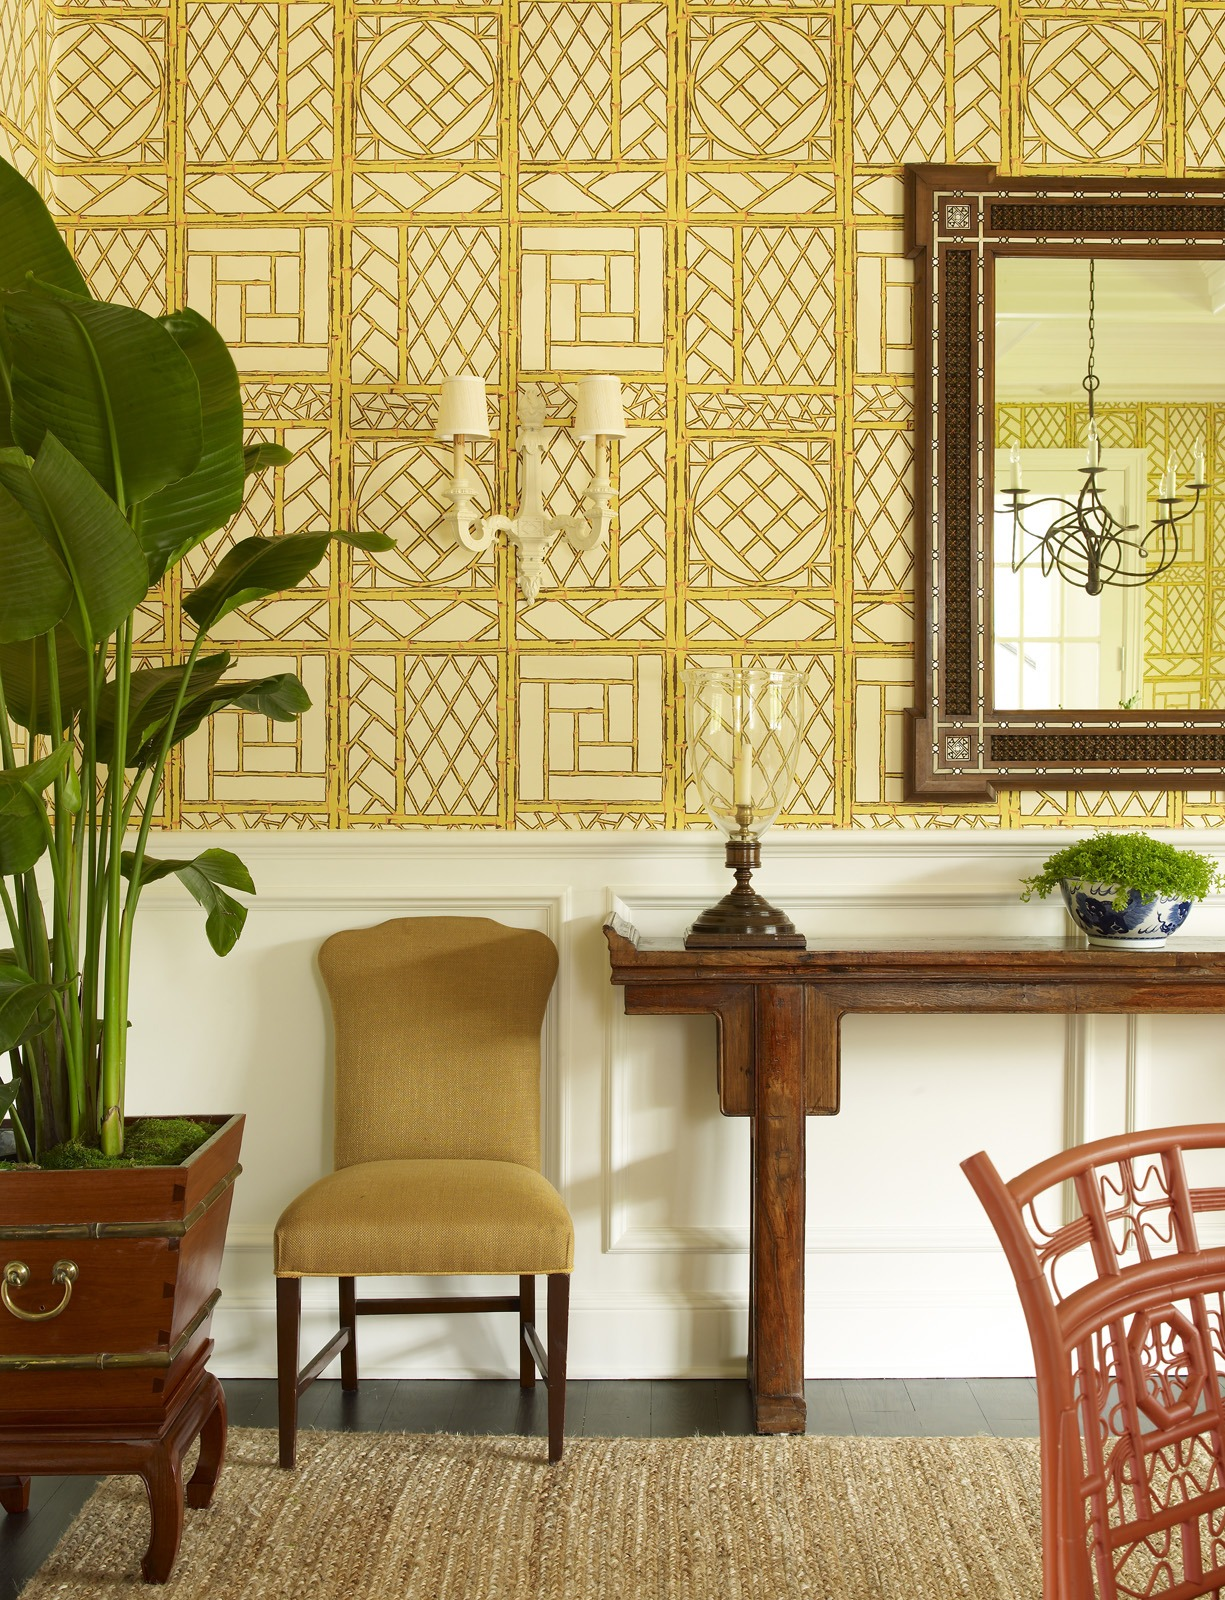 Meg Braff Designs Southampton home dining room wallpaper